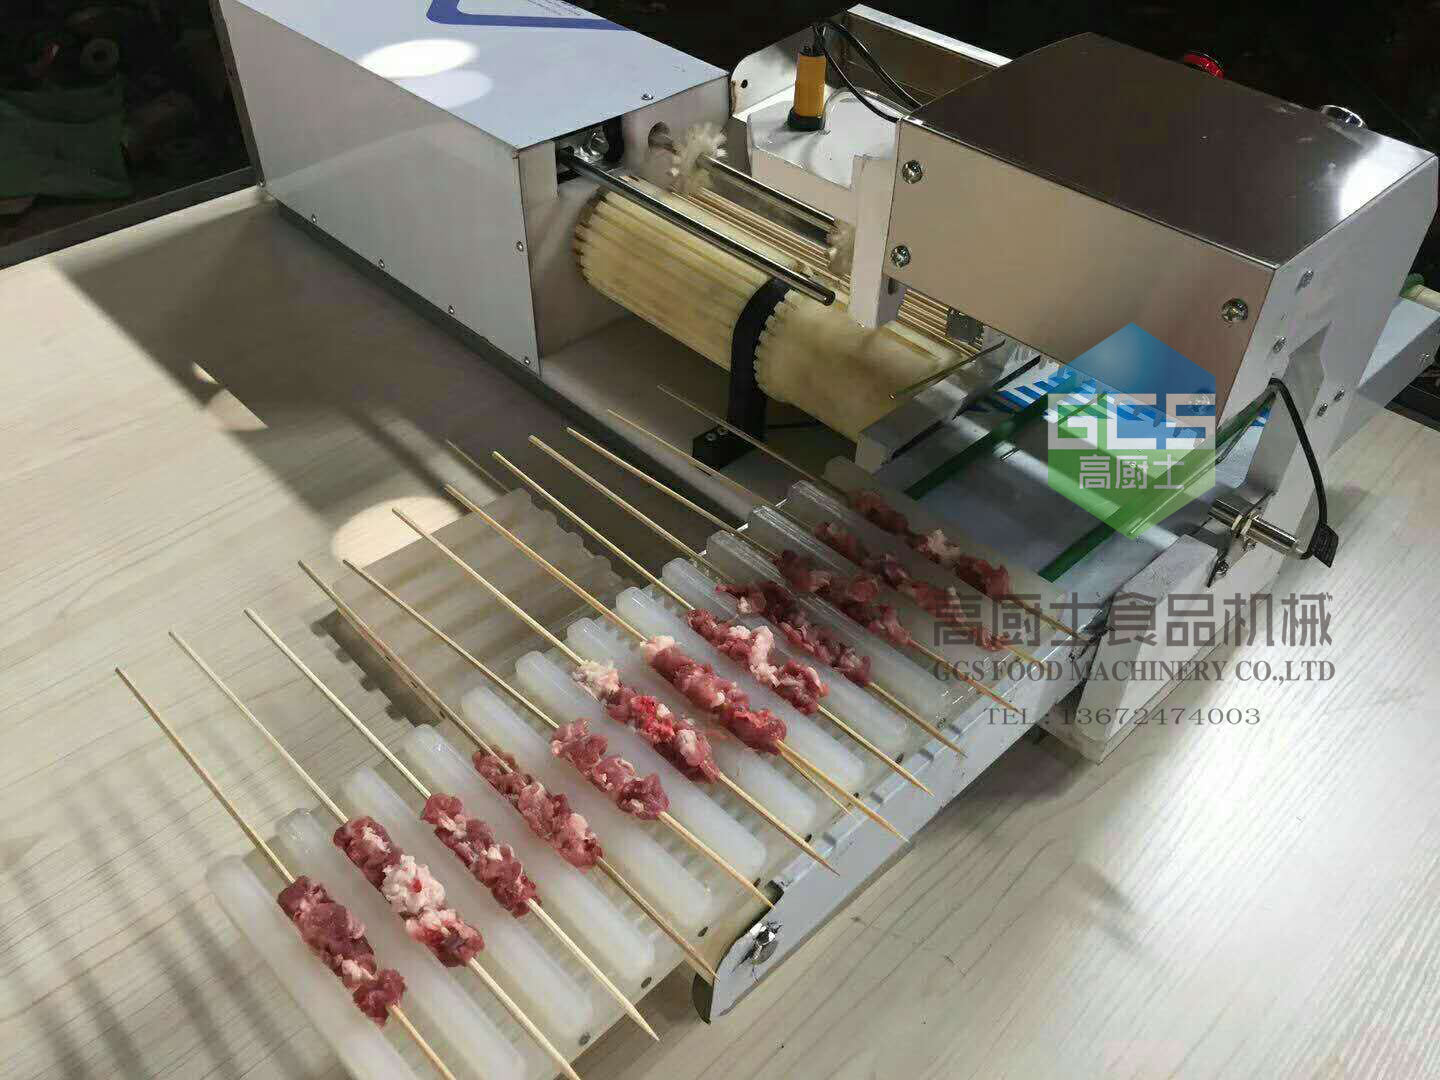 Full-Automatic Meat Wear Mutton String Machine Business BBQ Skewer Meat String Machine